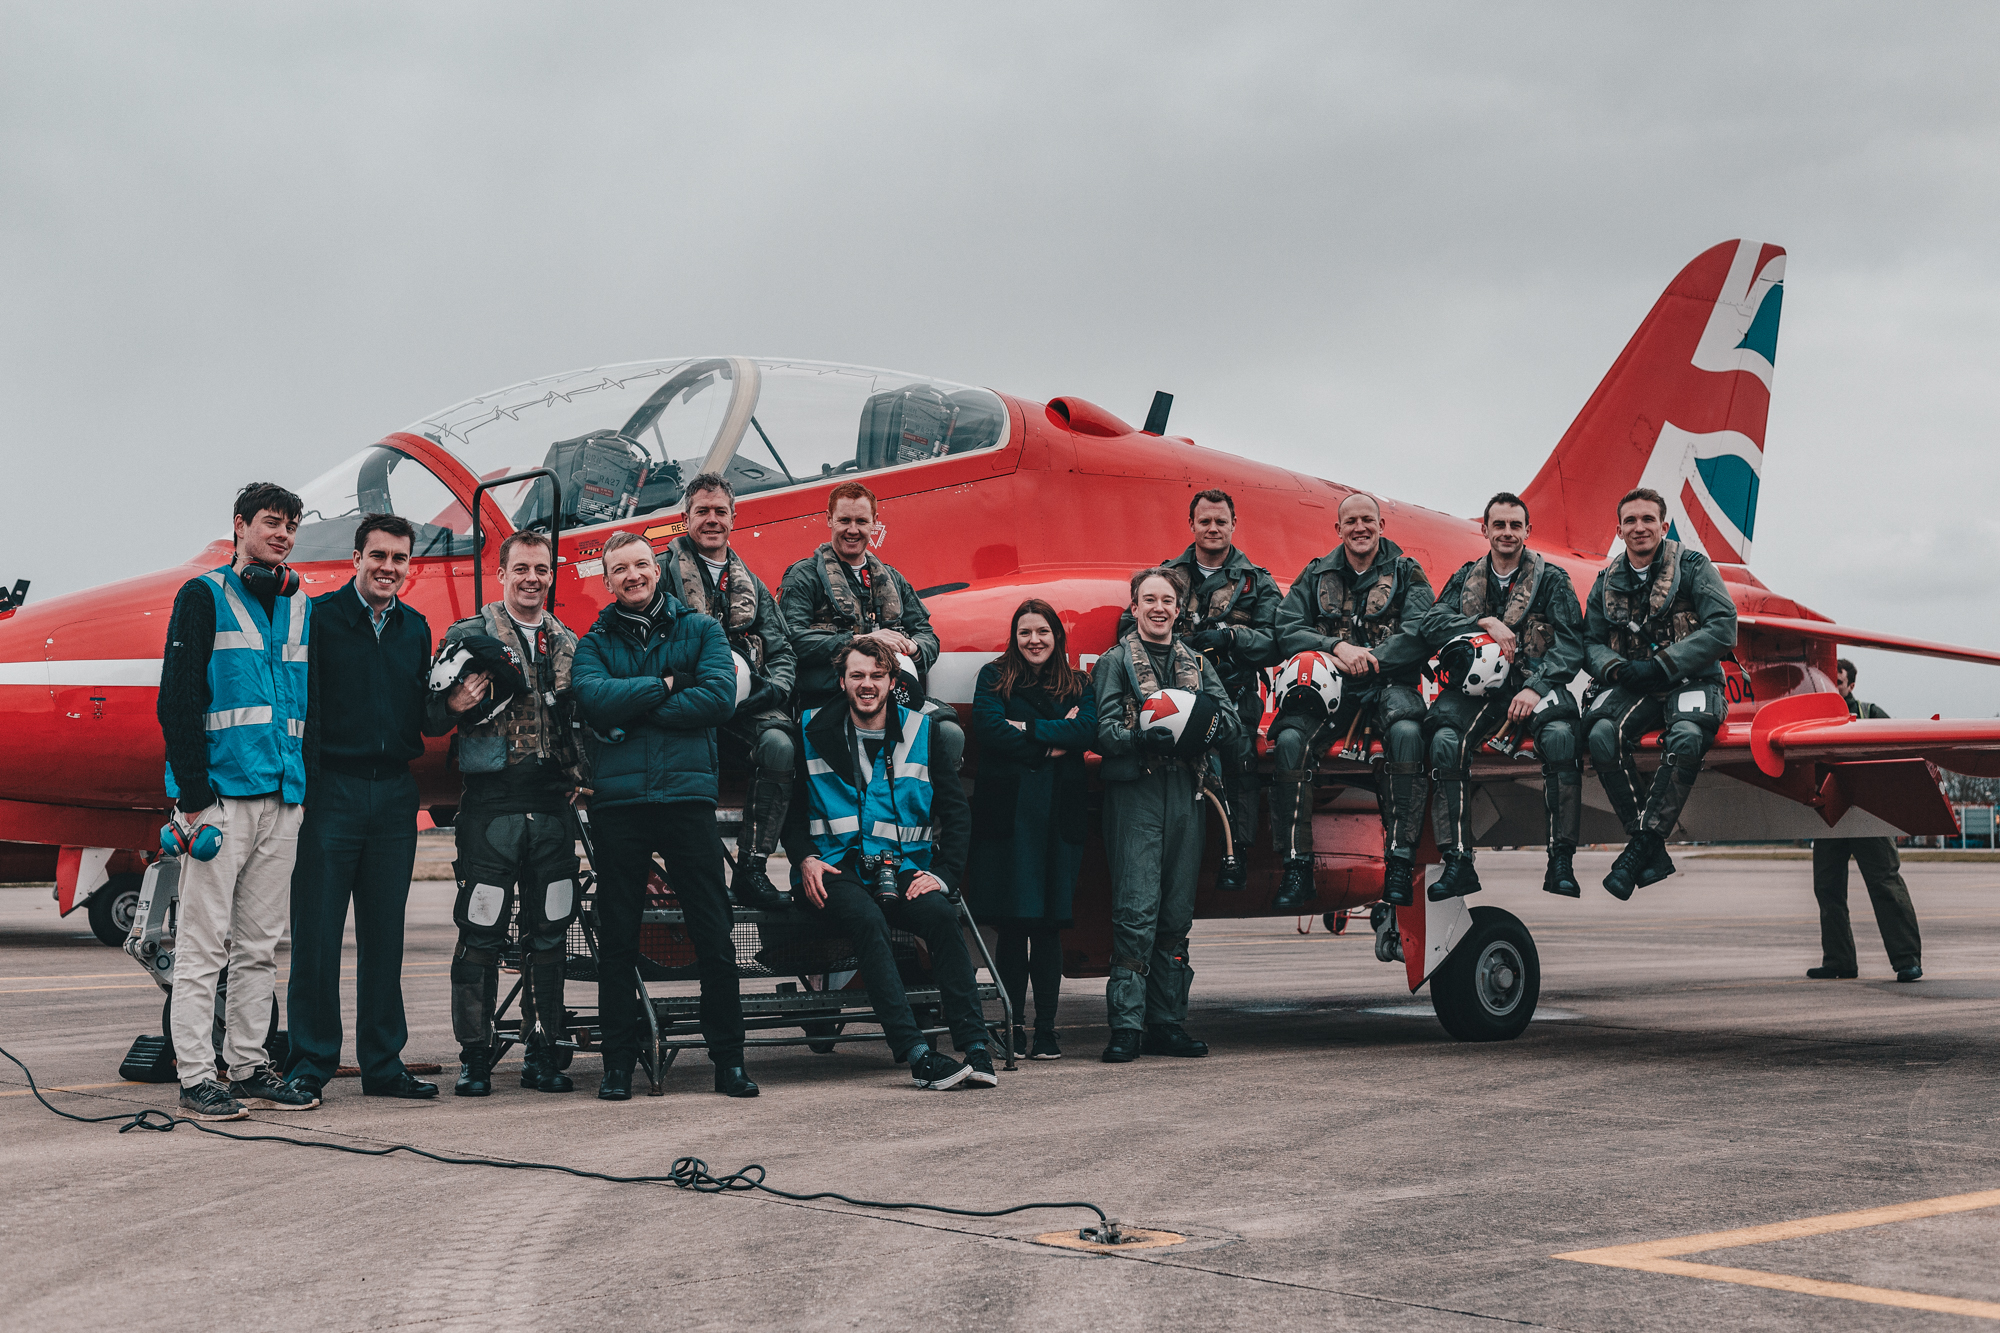 Royal Air Force x Red Arrows x Digital Voices